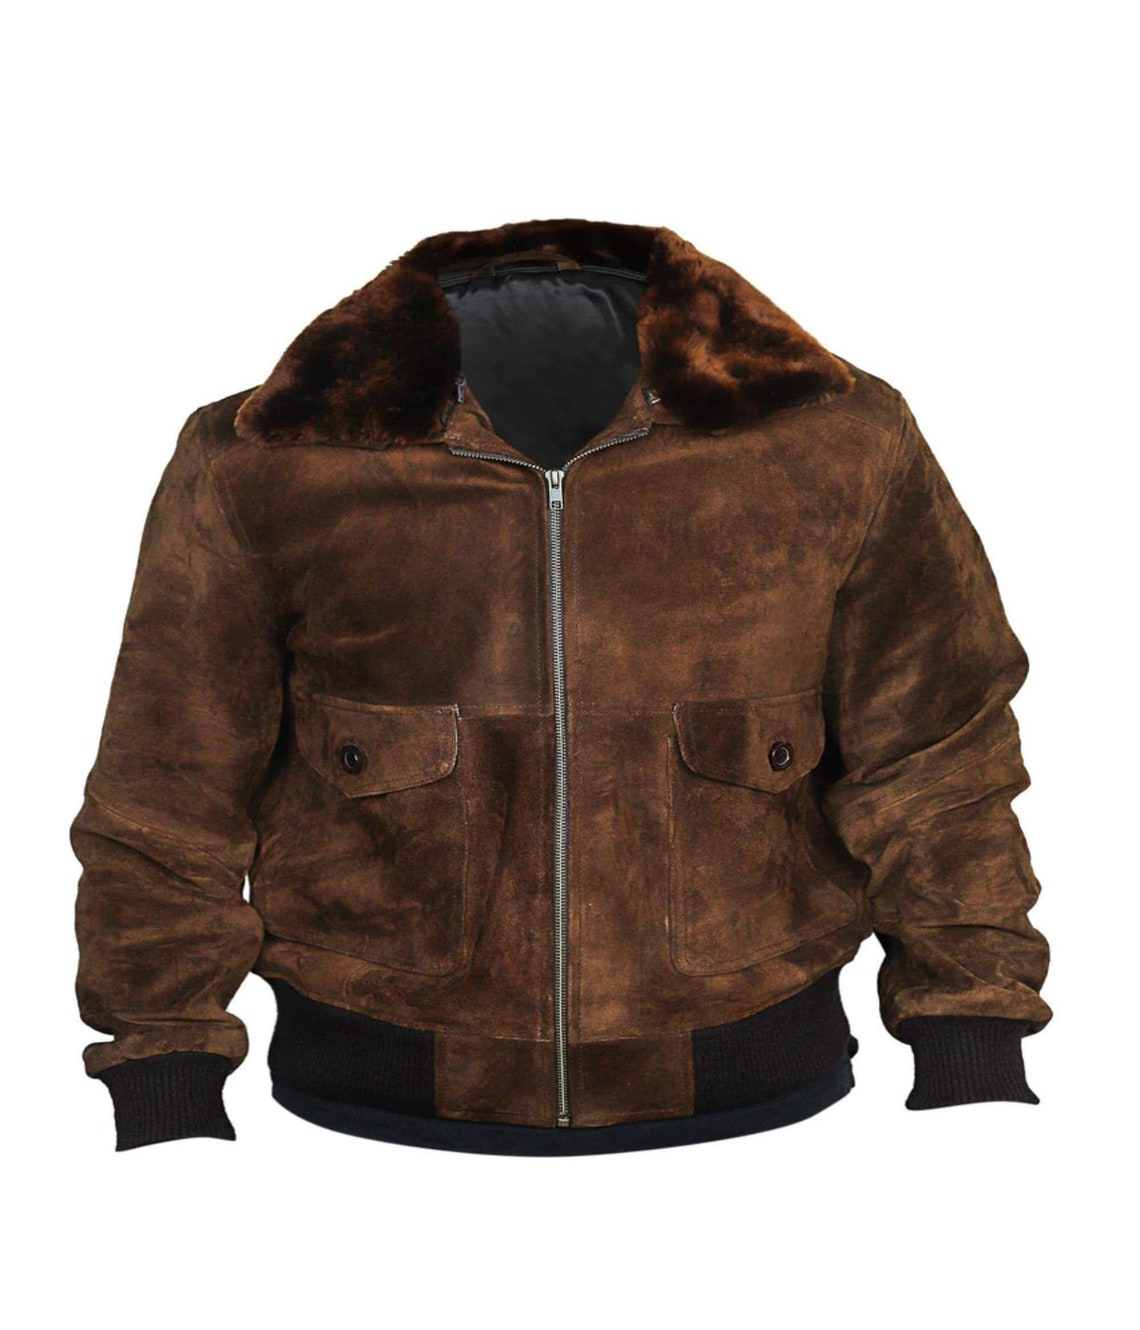 100% Genuine Leather Brown Suede American Eagle Bomber Jacket